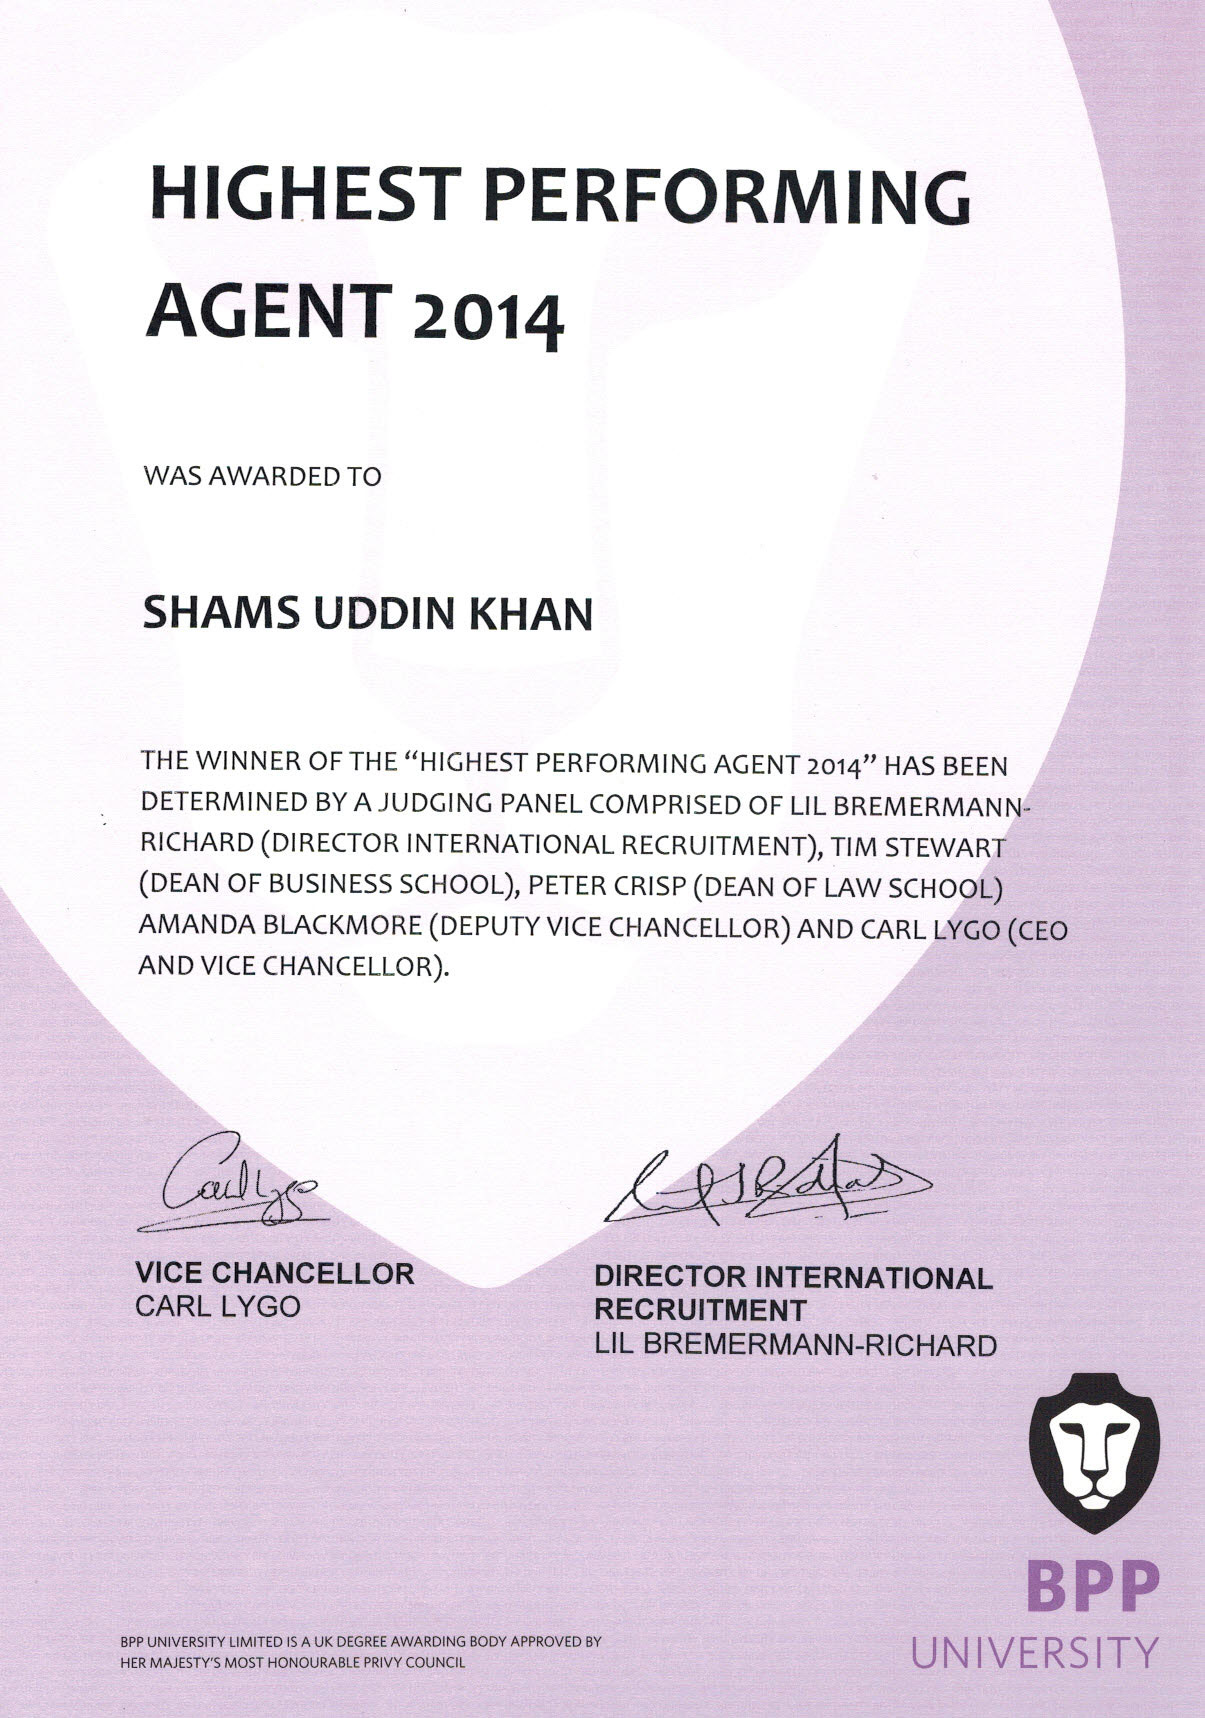 Highest Performing Agent 2014